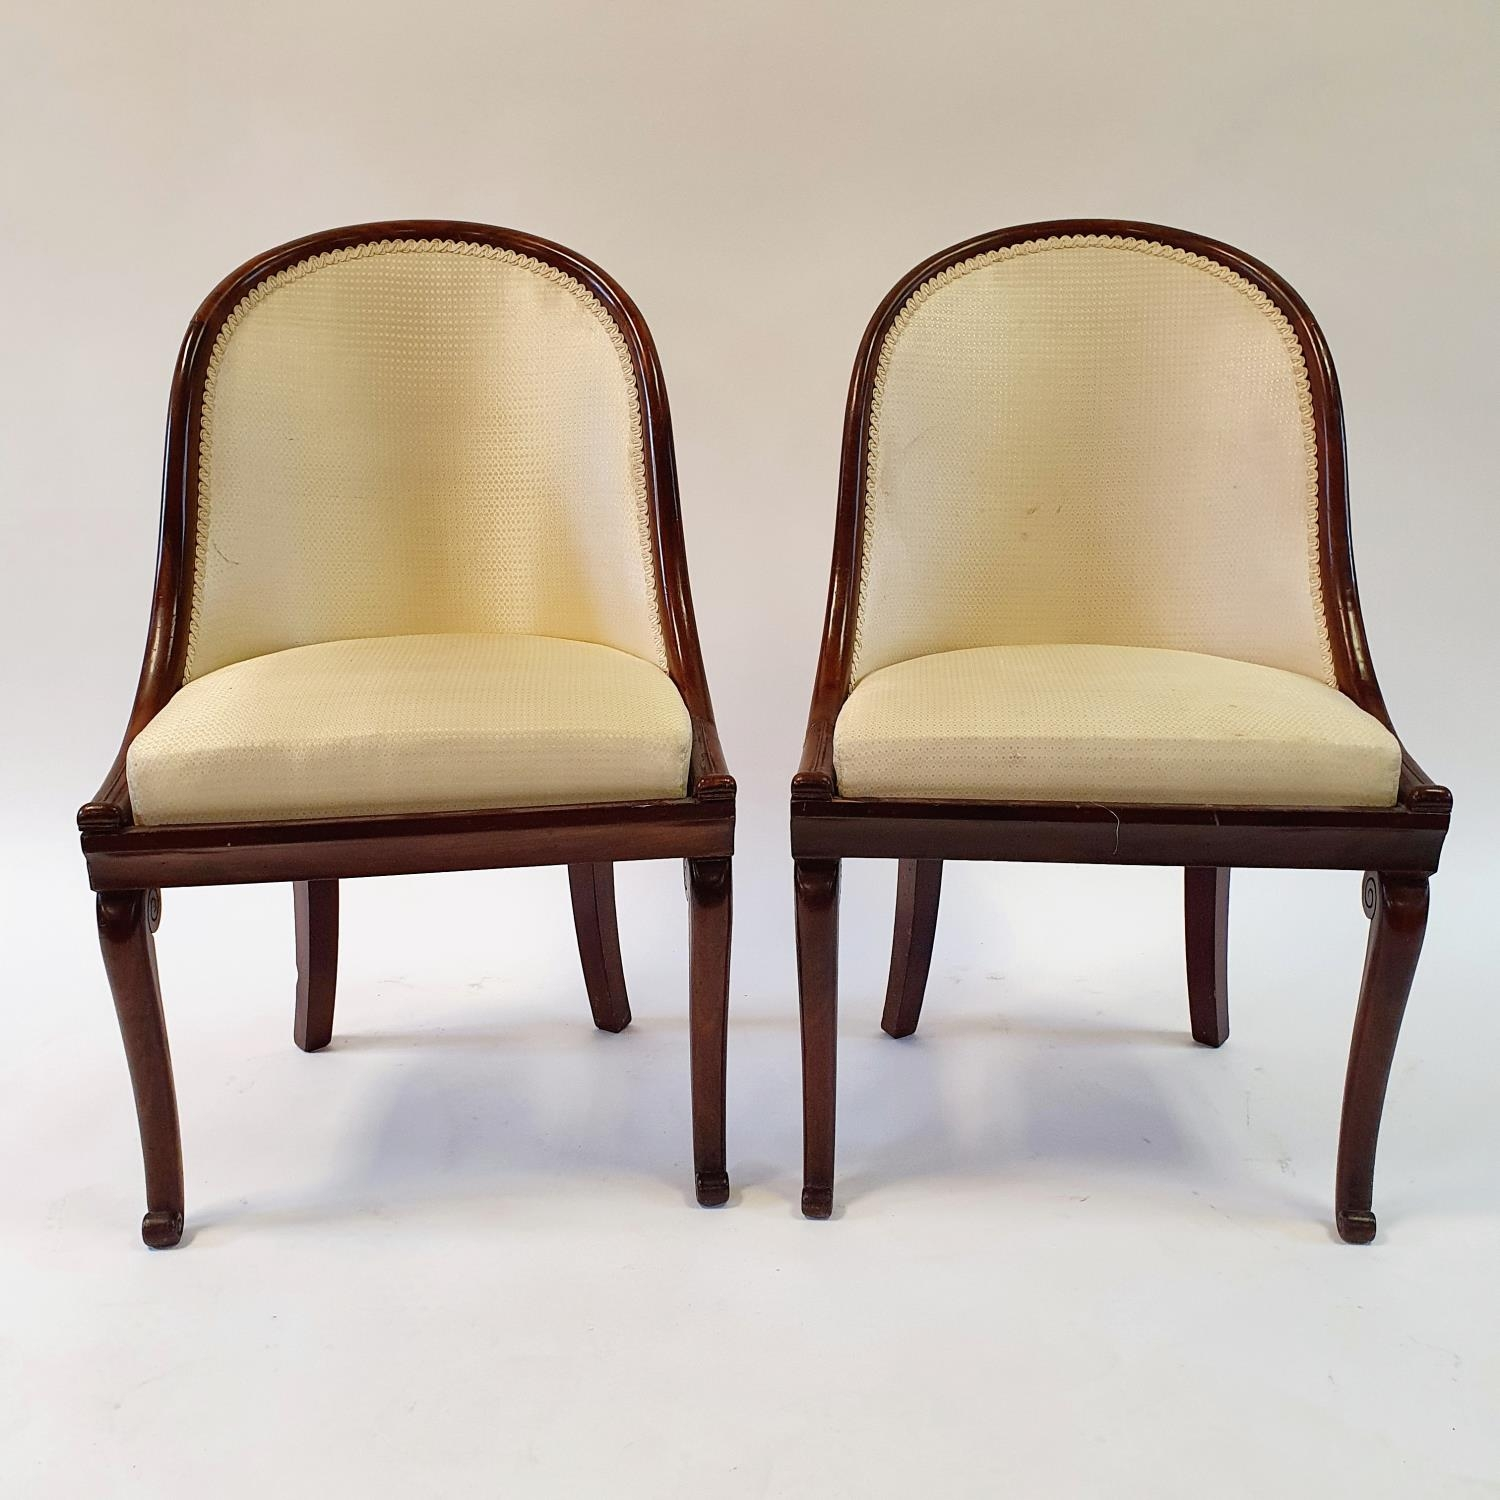 A pair of 19th century mahogany hoop back chairs, of small proportions, on cabriole legs (2) Signs